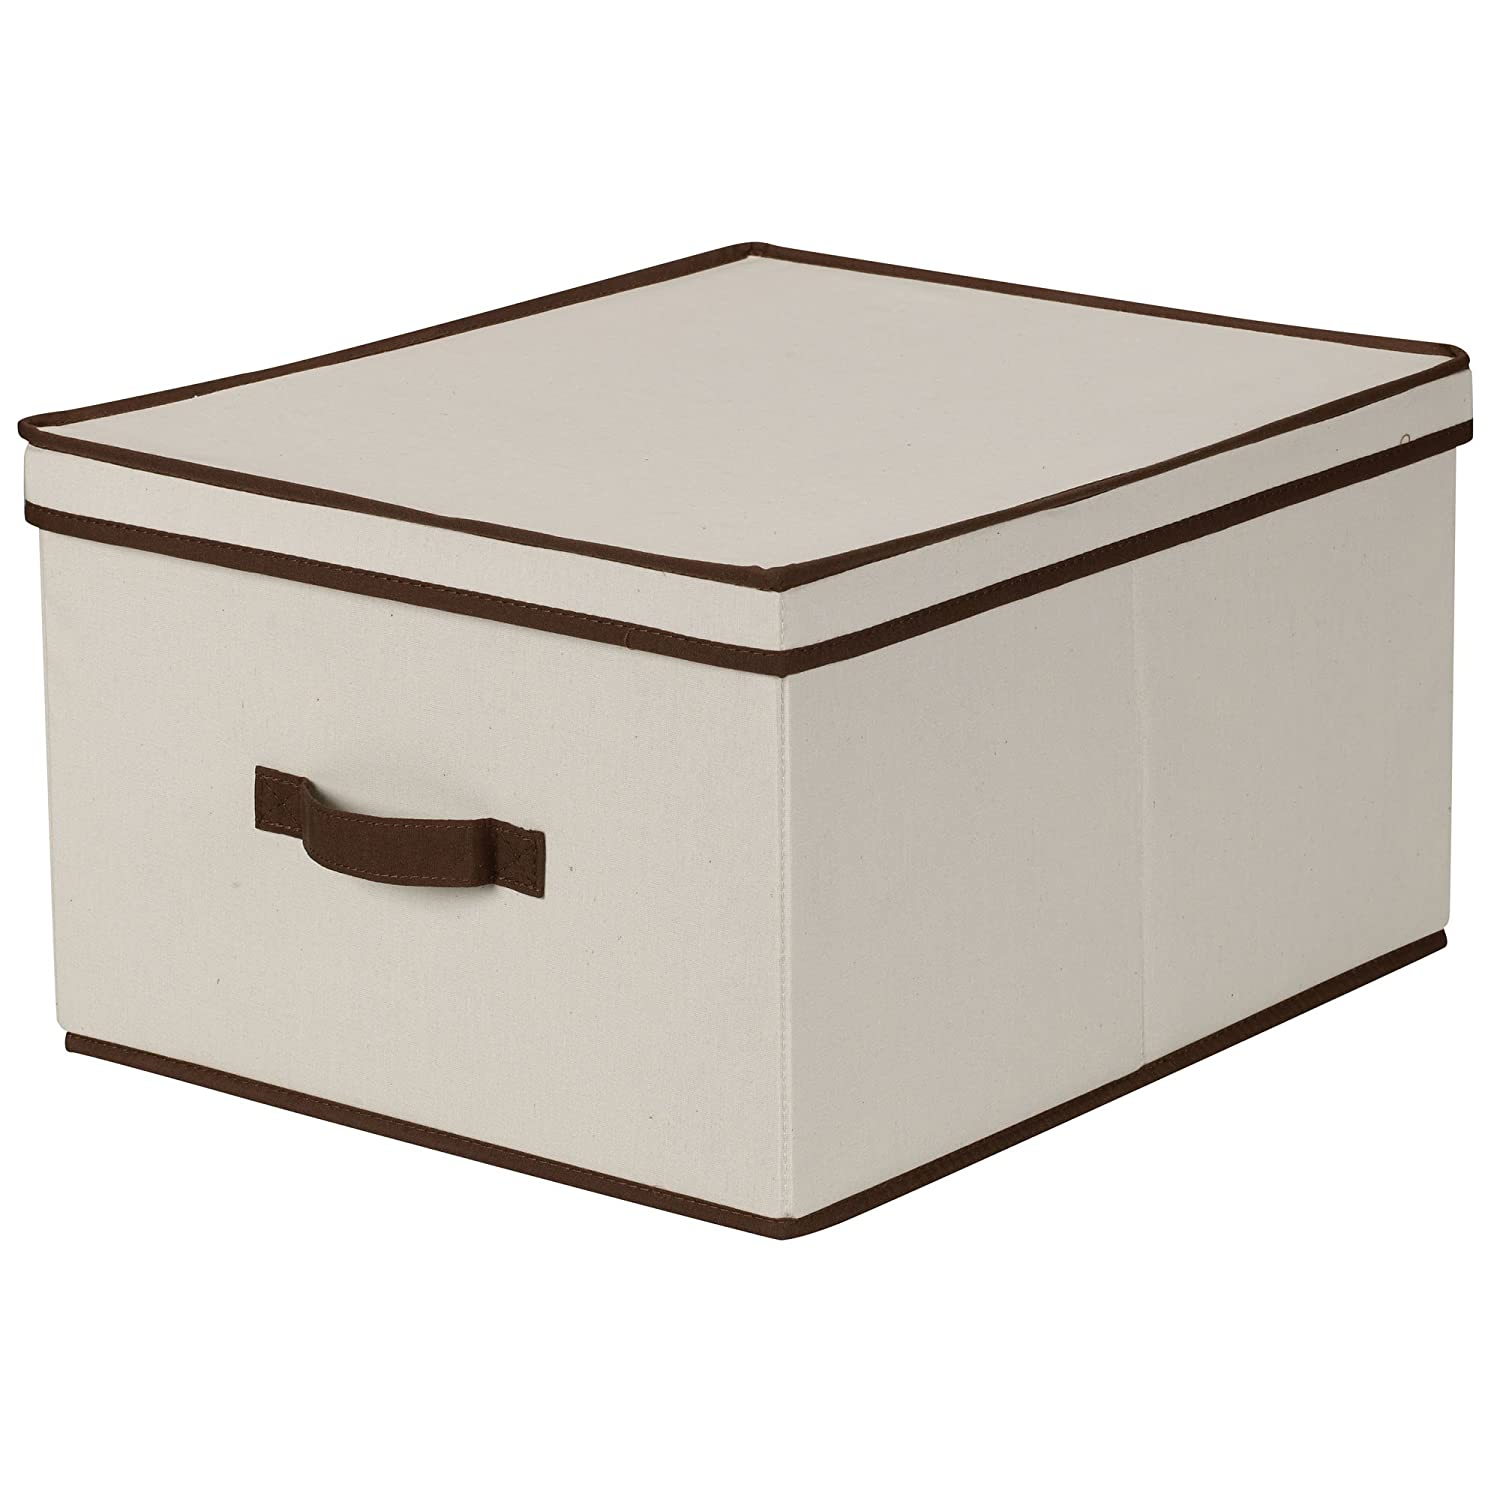 Attirant Amazon.com: Household Essentials 515 Storage Box With Lid And Handle   Natural Beige Canvas With Brown Trim  Jumbo: Home U0026 Kitchen